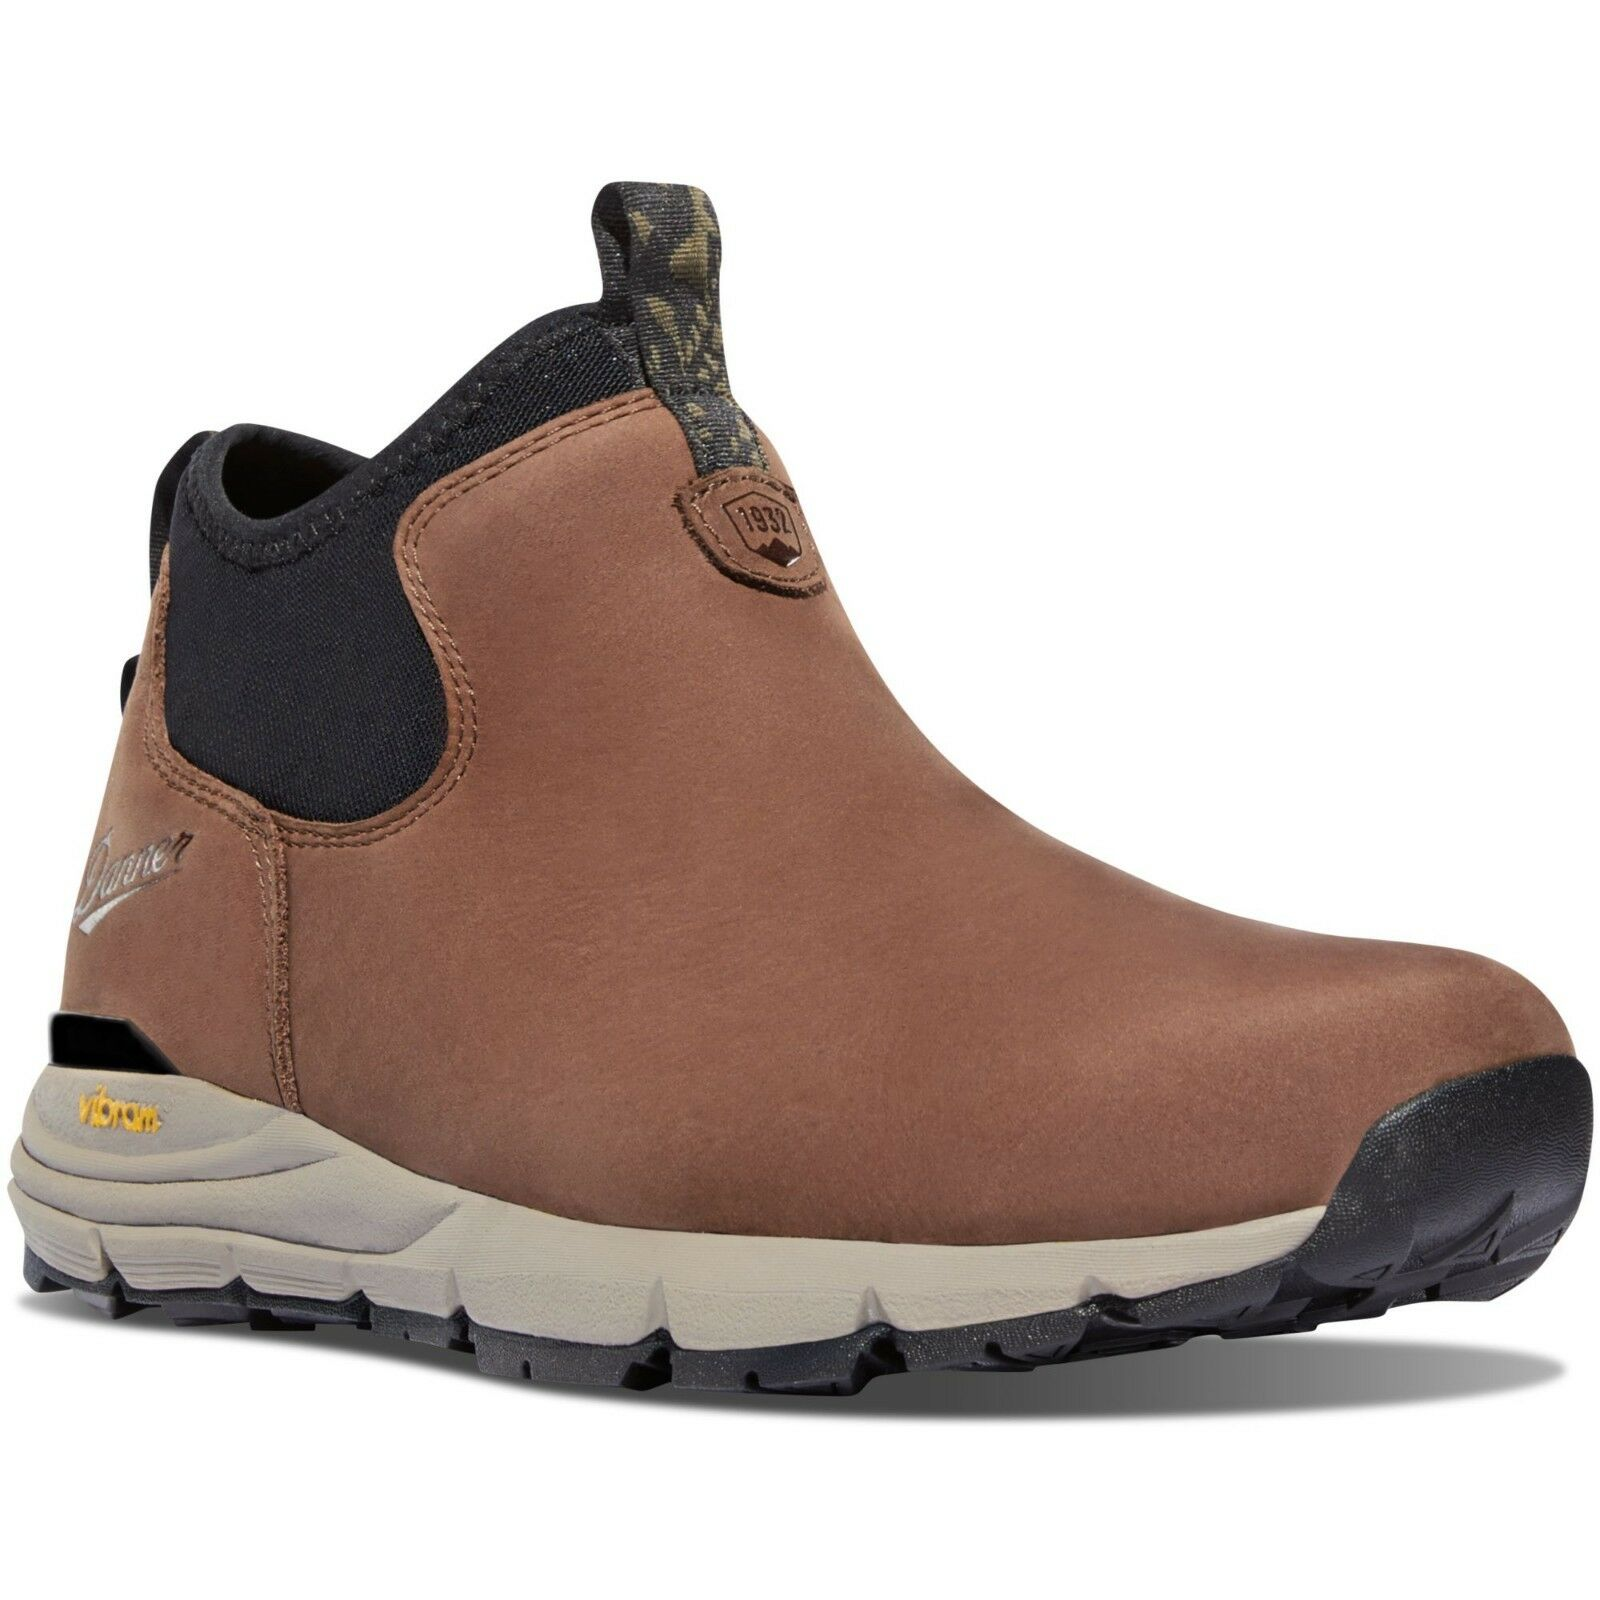 Danner Men's 36222 Mountain 600 Chelsea Mahogany Lifestyle Outdoor shoes Boots